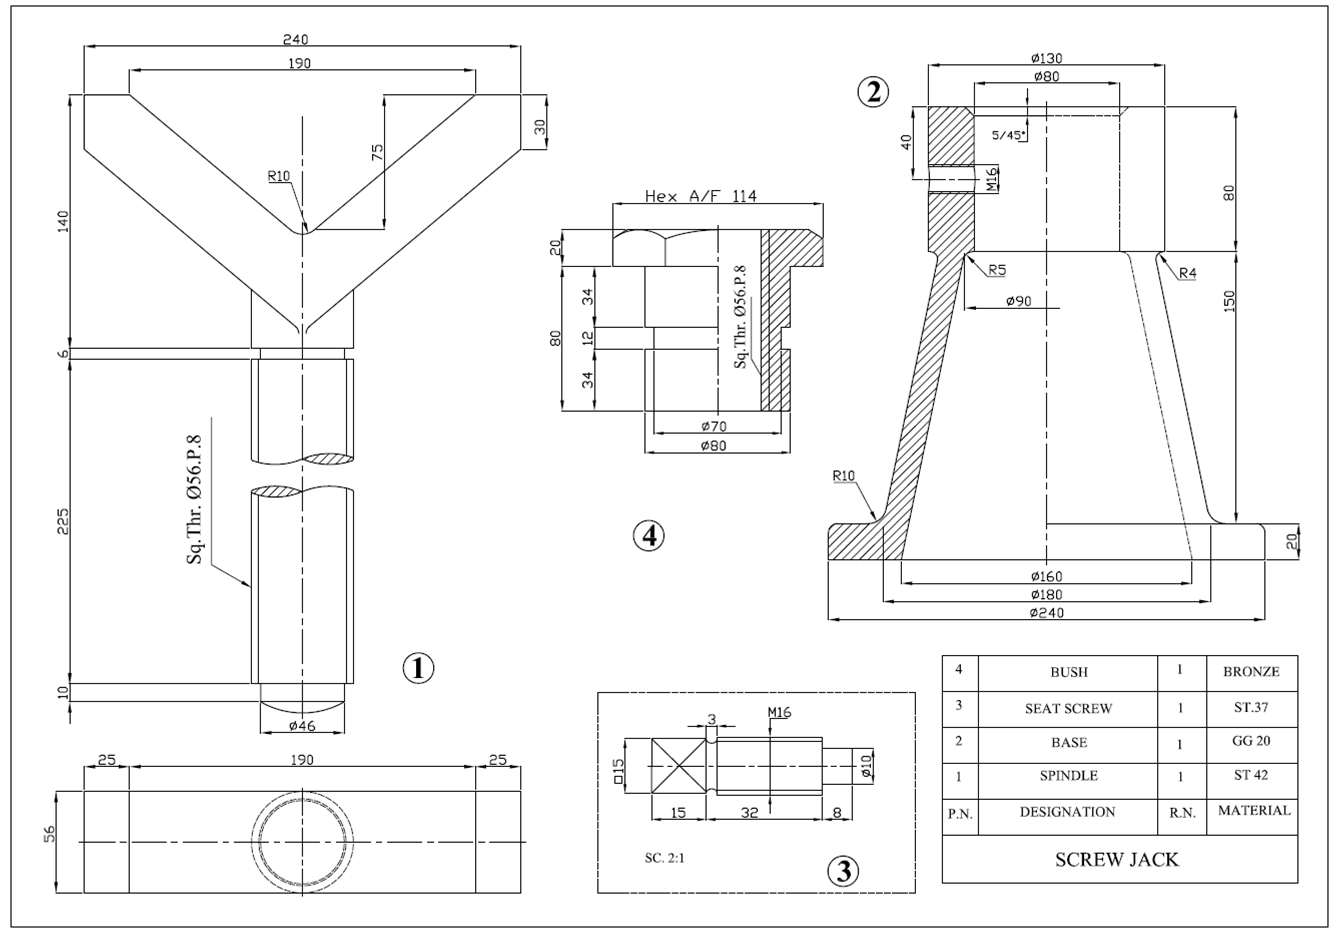 Alis engineering design mieexpert15 the assembly drawing will include a list of reference drawings and notes identifying the relevant codes and specifications and testing requirements biocorpaavc